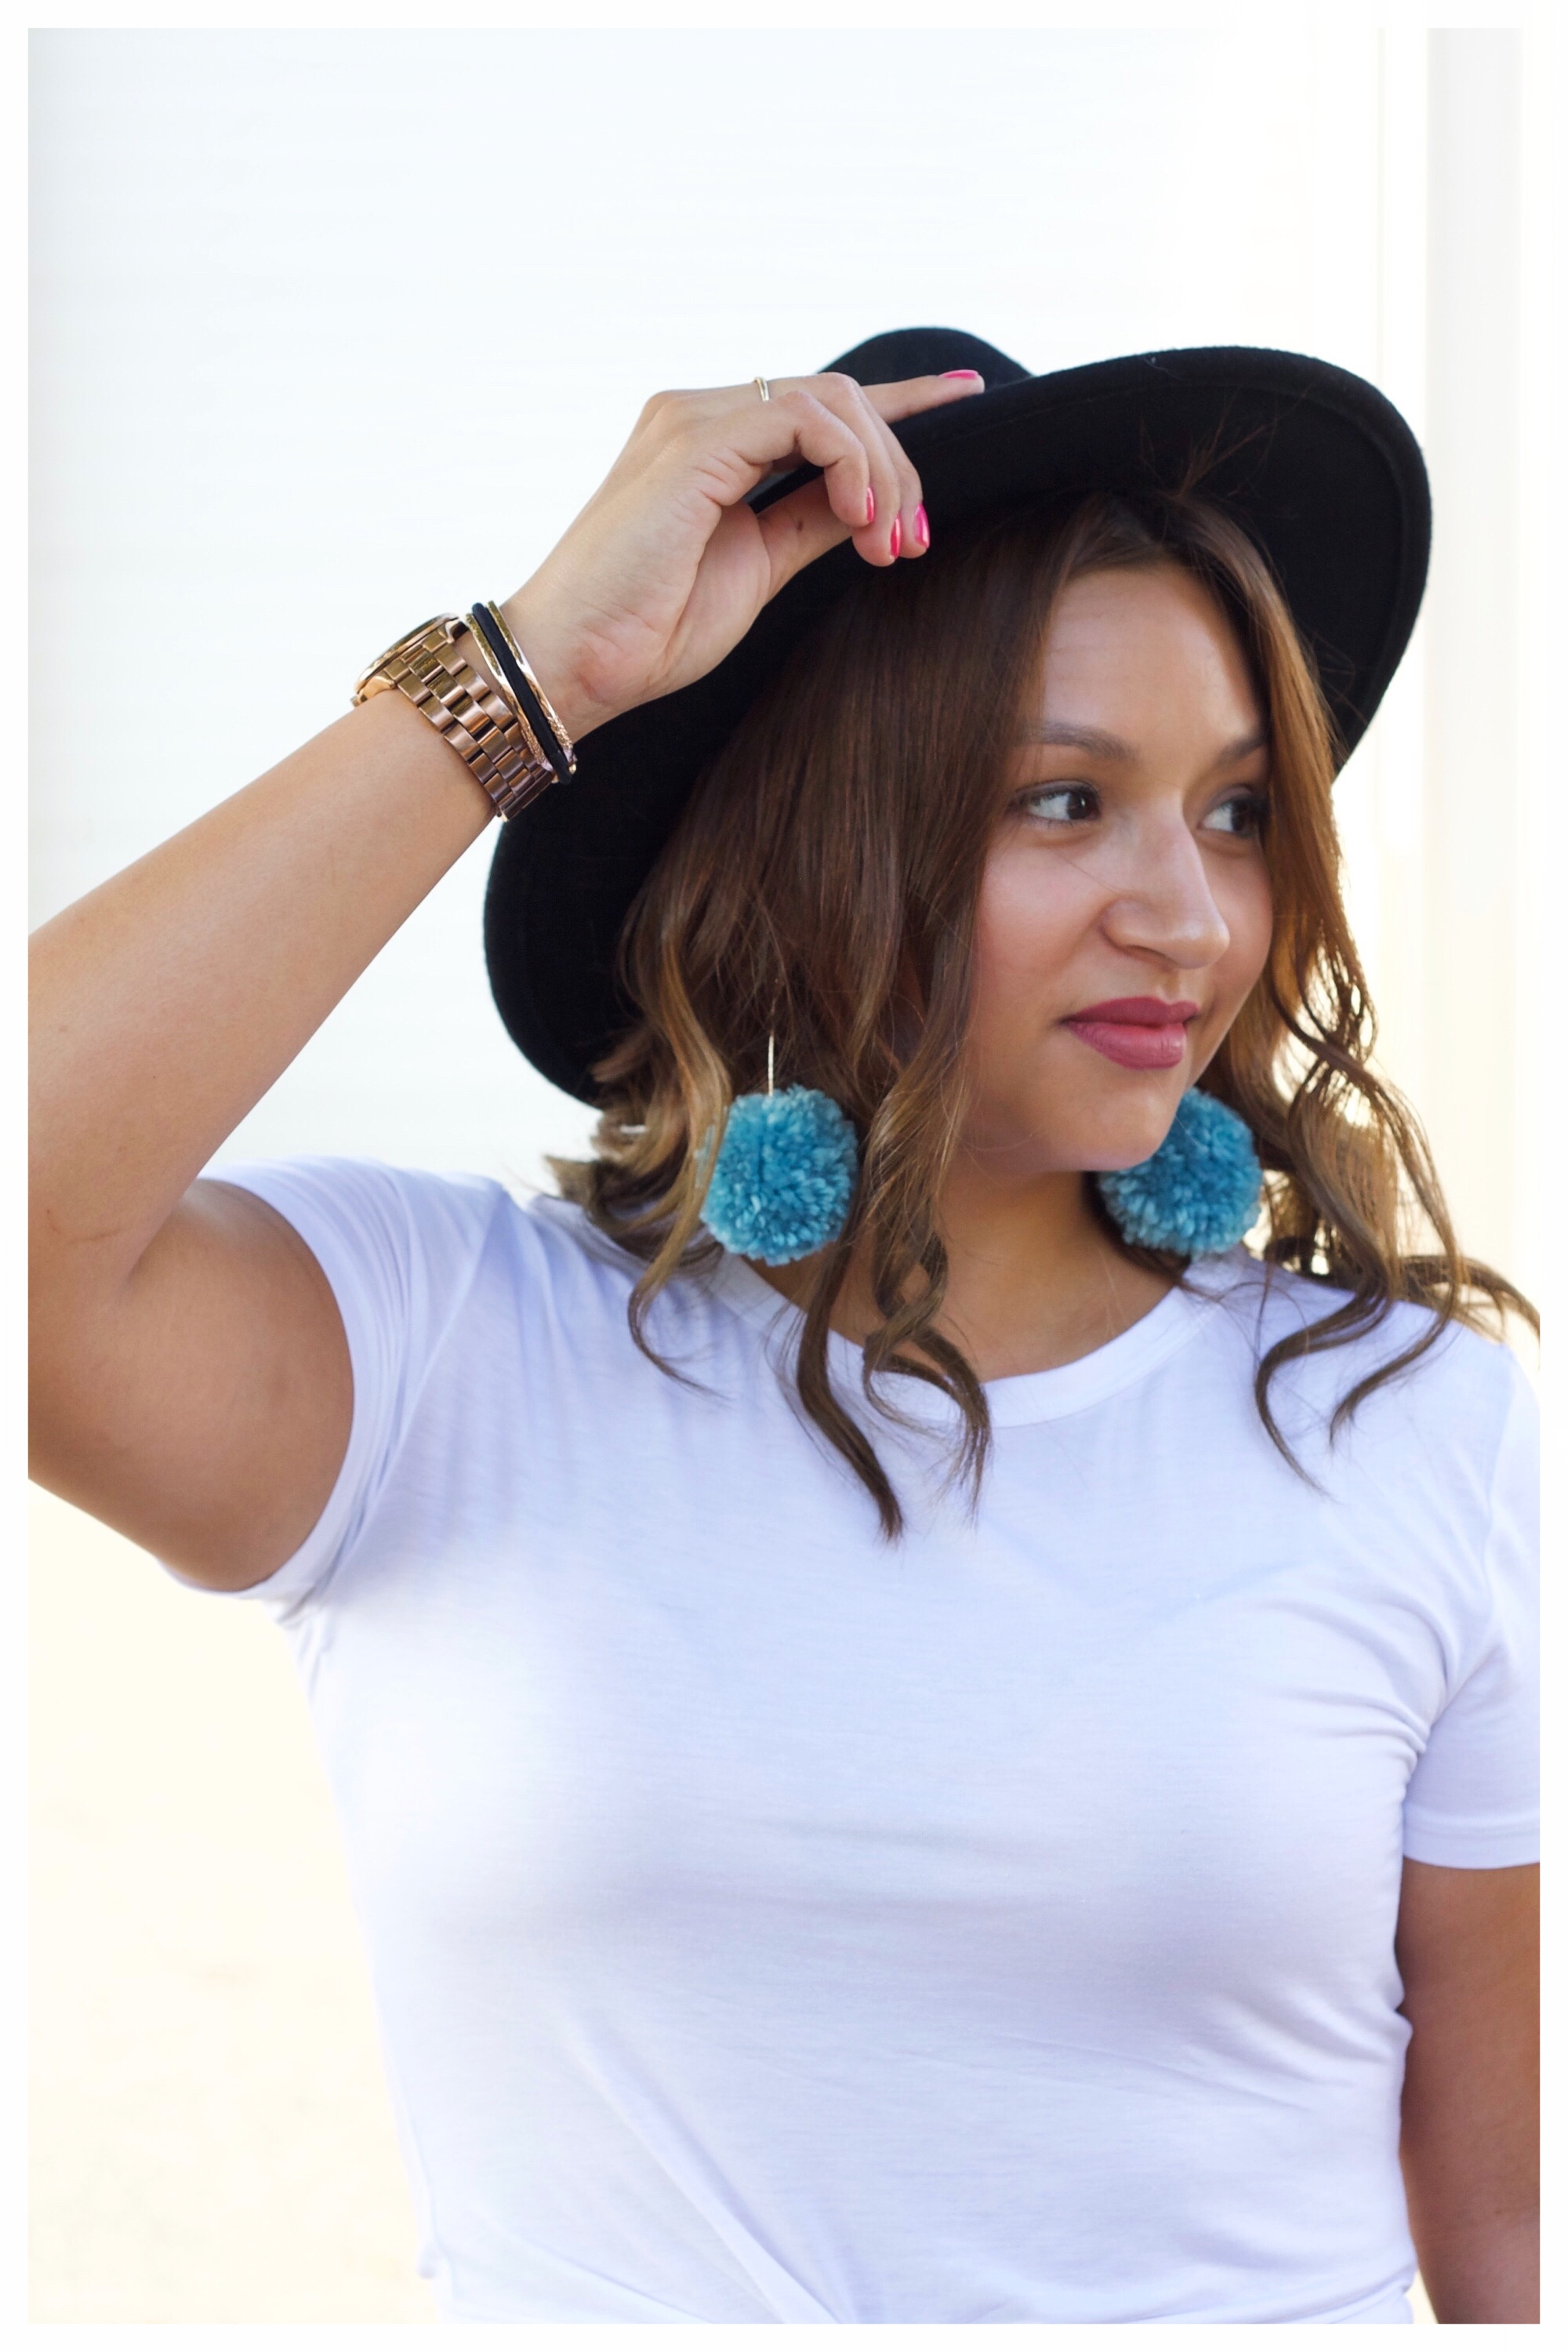 Blue Pom Pom Earrings and Gold Accessories